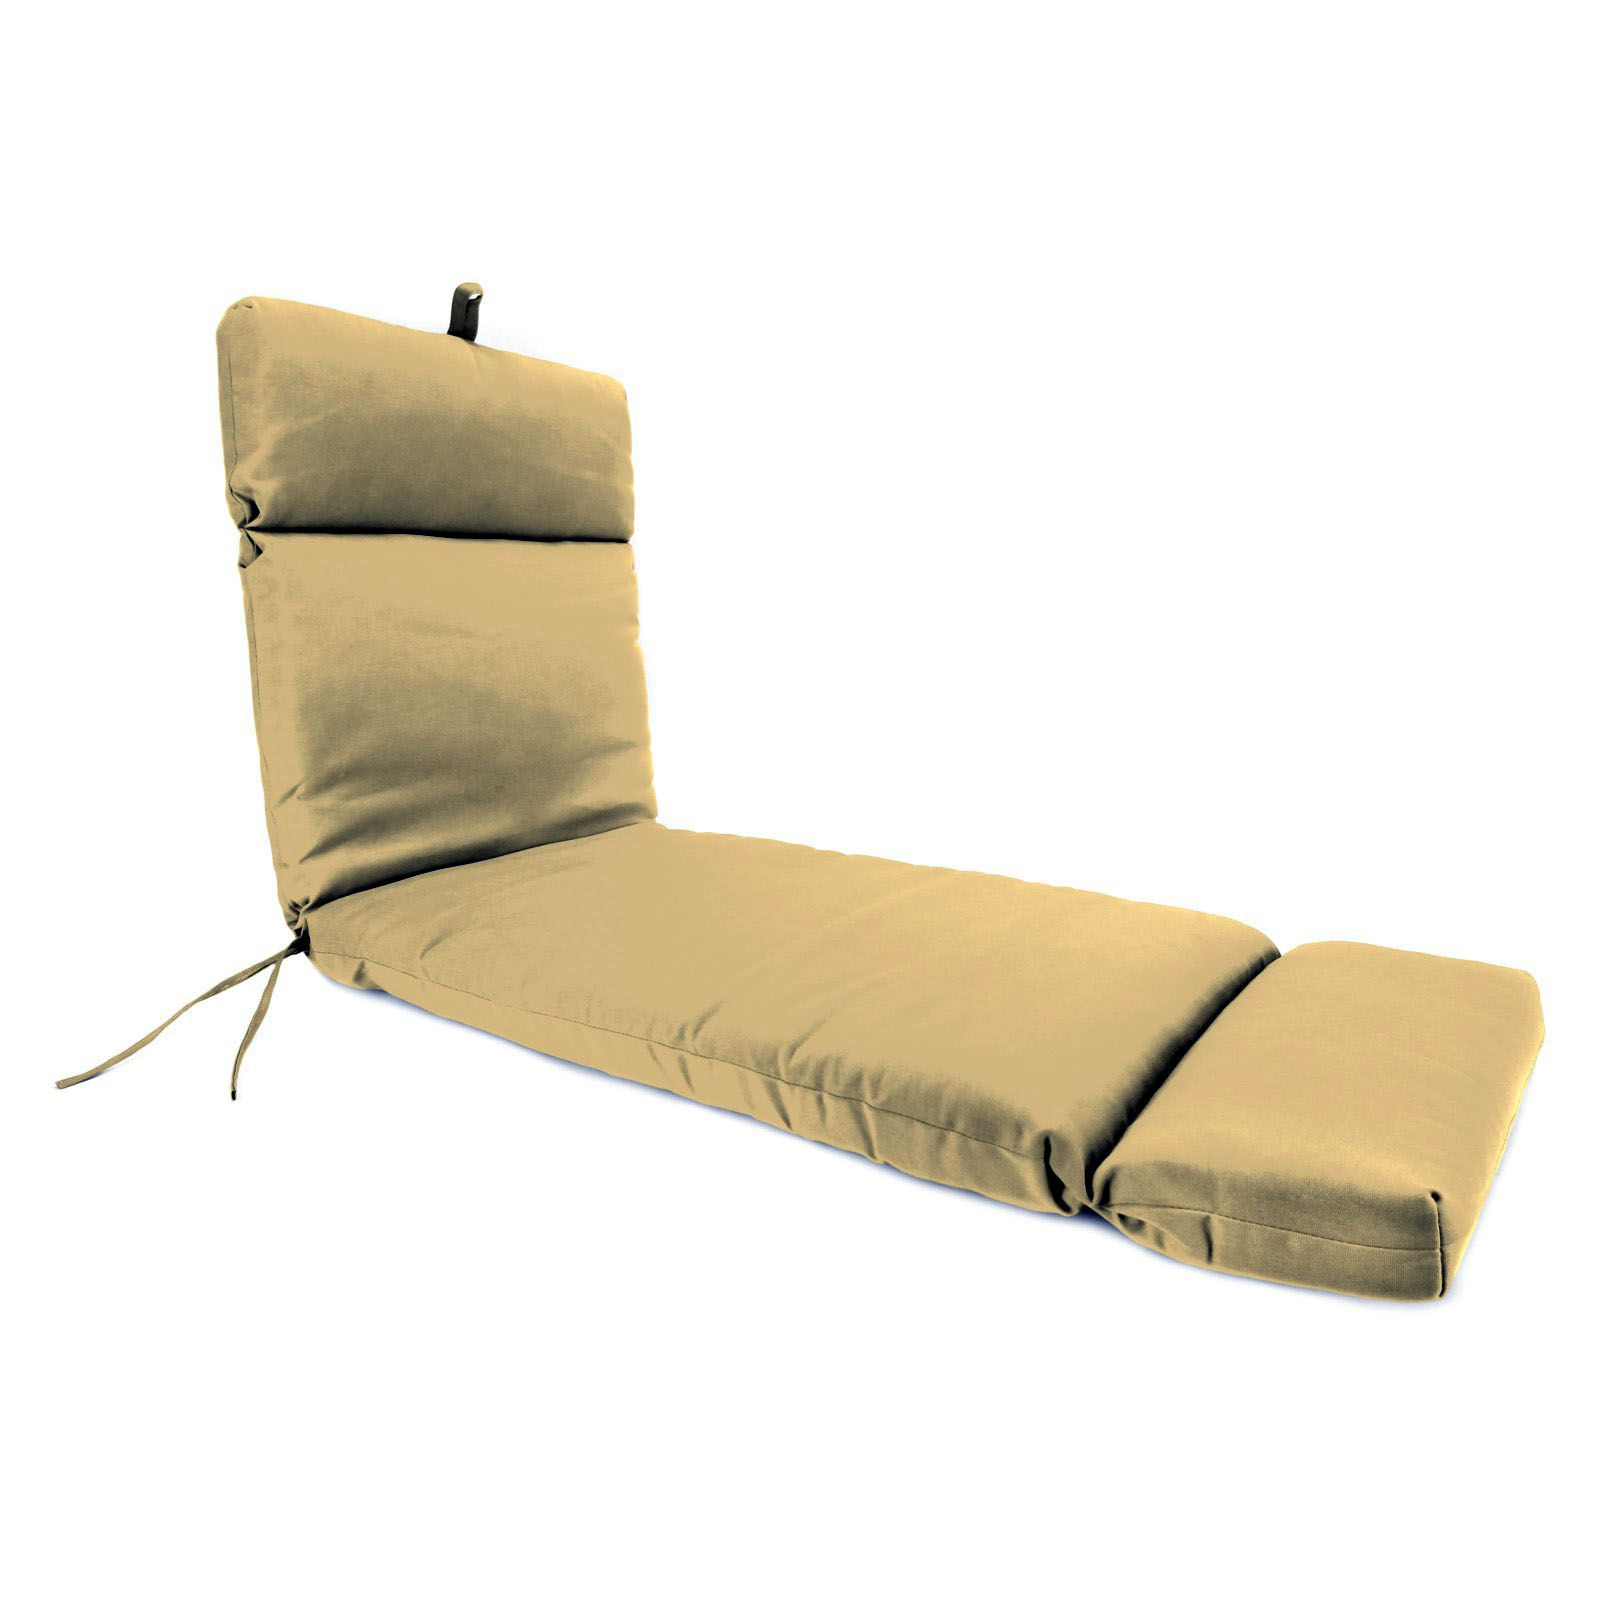 Stunning Low Budget Outdoor Chaise Lounge Chairs Clearance You Ll